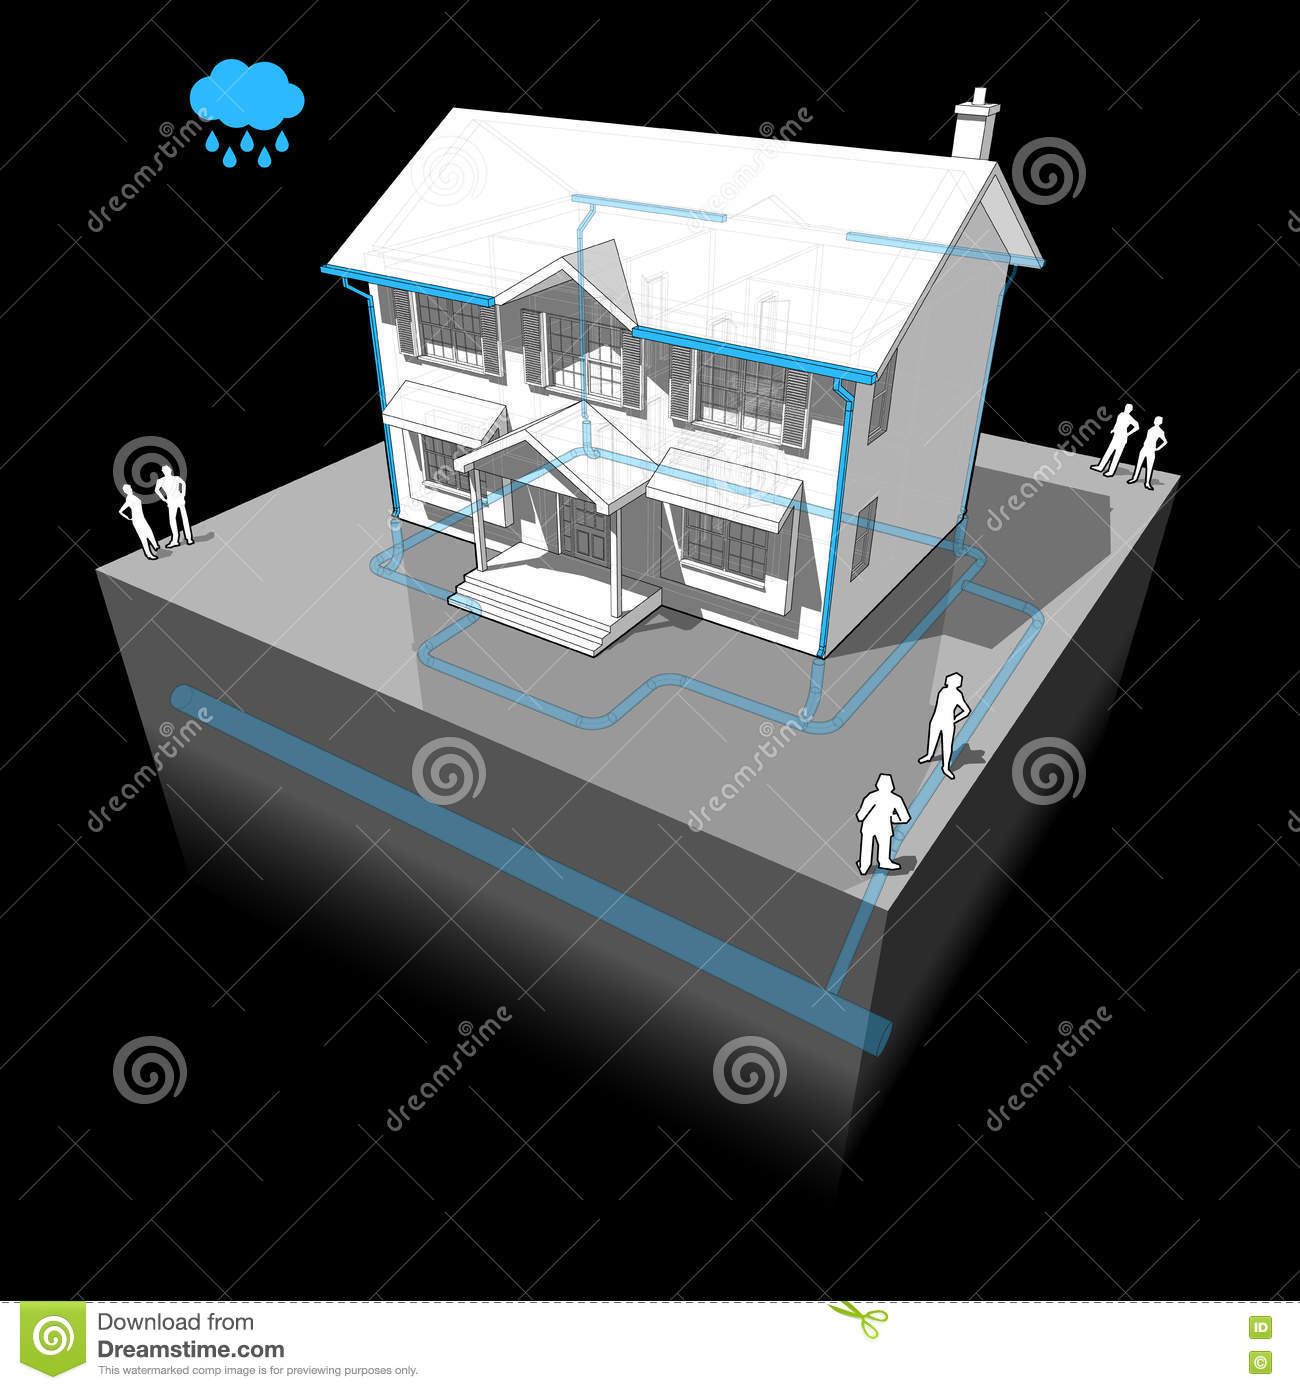 Colonial House And Storm Sewer System Stock Vector Illustration Of